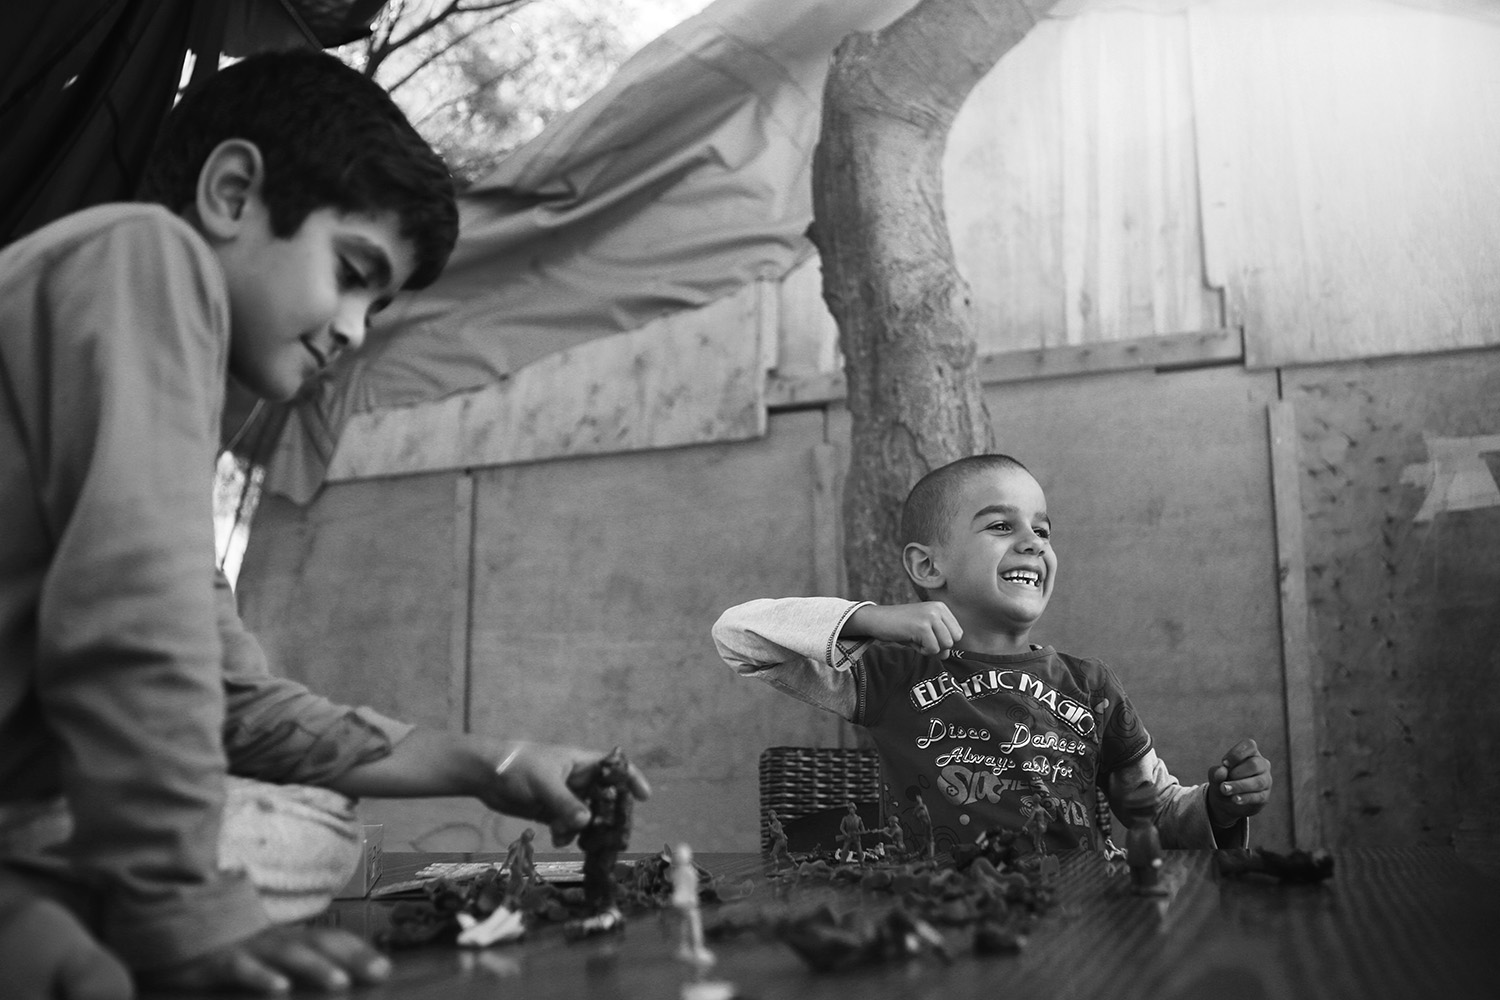 Children play in PIKPA village, Lesvos, which provides safe accommodation and a welcoming environment for particularly vulnerable refugees, including women who have lost their children during the crossing, and adults and children with physical disabilities. PIKPA village is a former summer camp, transformed in 2012 into a refugee haven by volunteers with support from the local authorities.  It is community-run, and one of its founders, Efi Latsoudi, is one of the joint 2016 winners of UNHCR's Nansen Refugee Award.